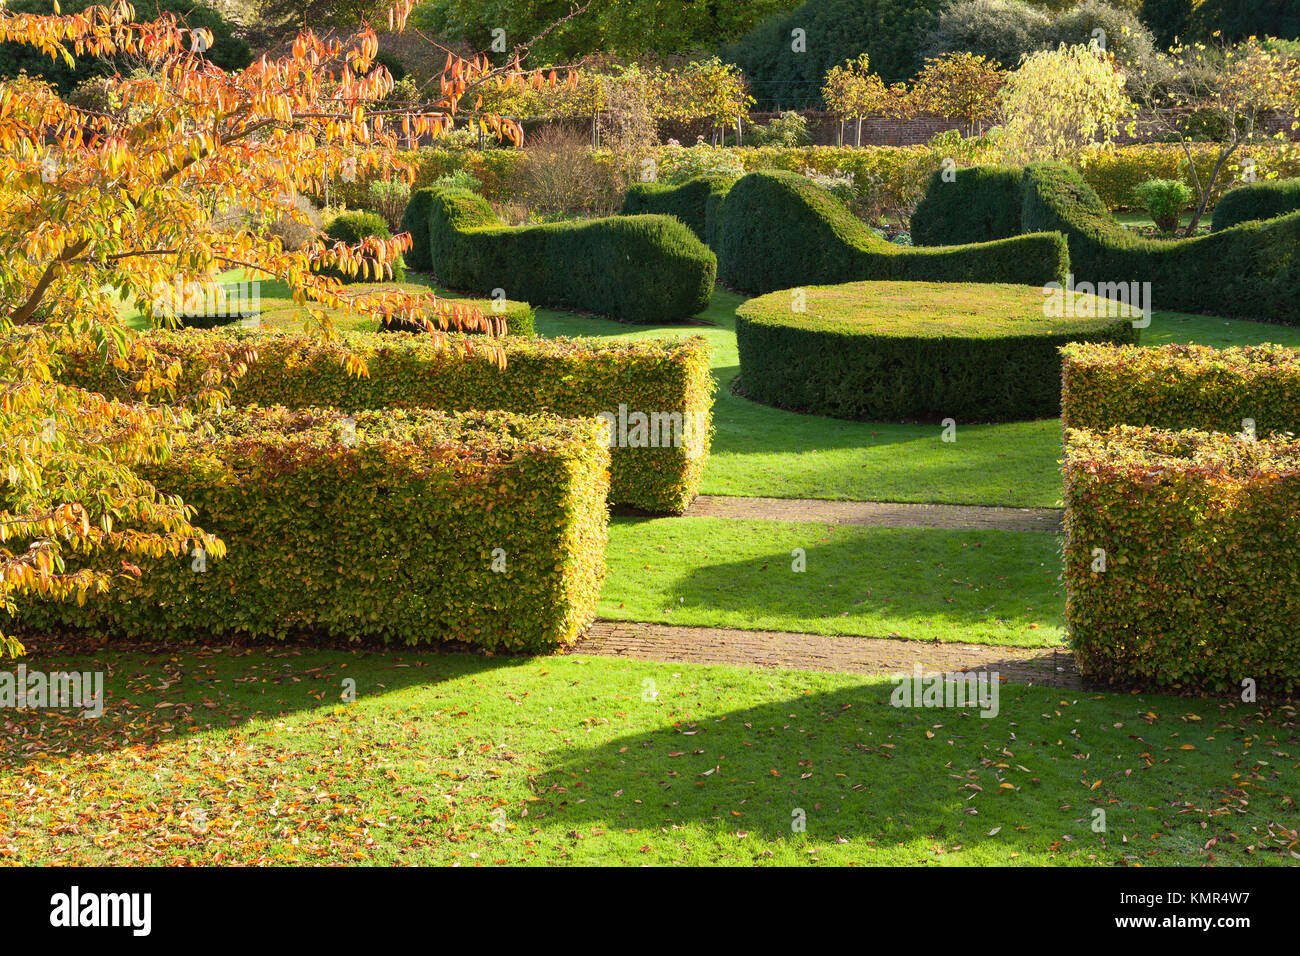 Piet oudolf design stock photos piet oudolf design stock for Garden design yorkshire